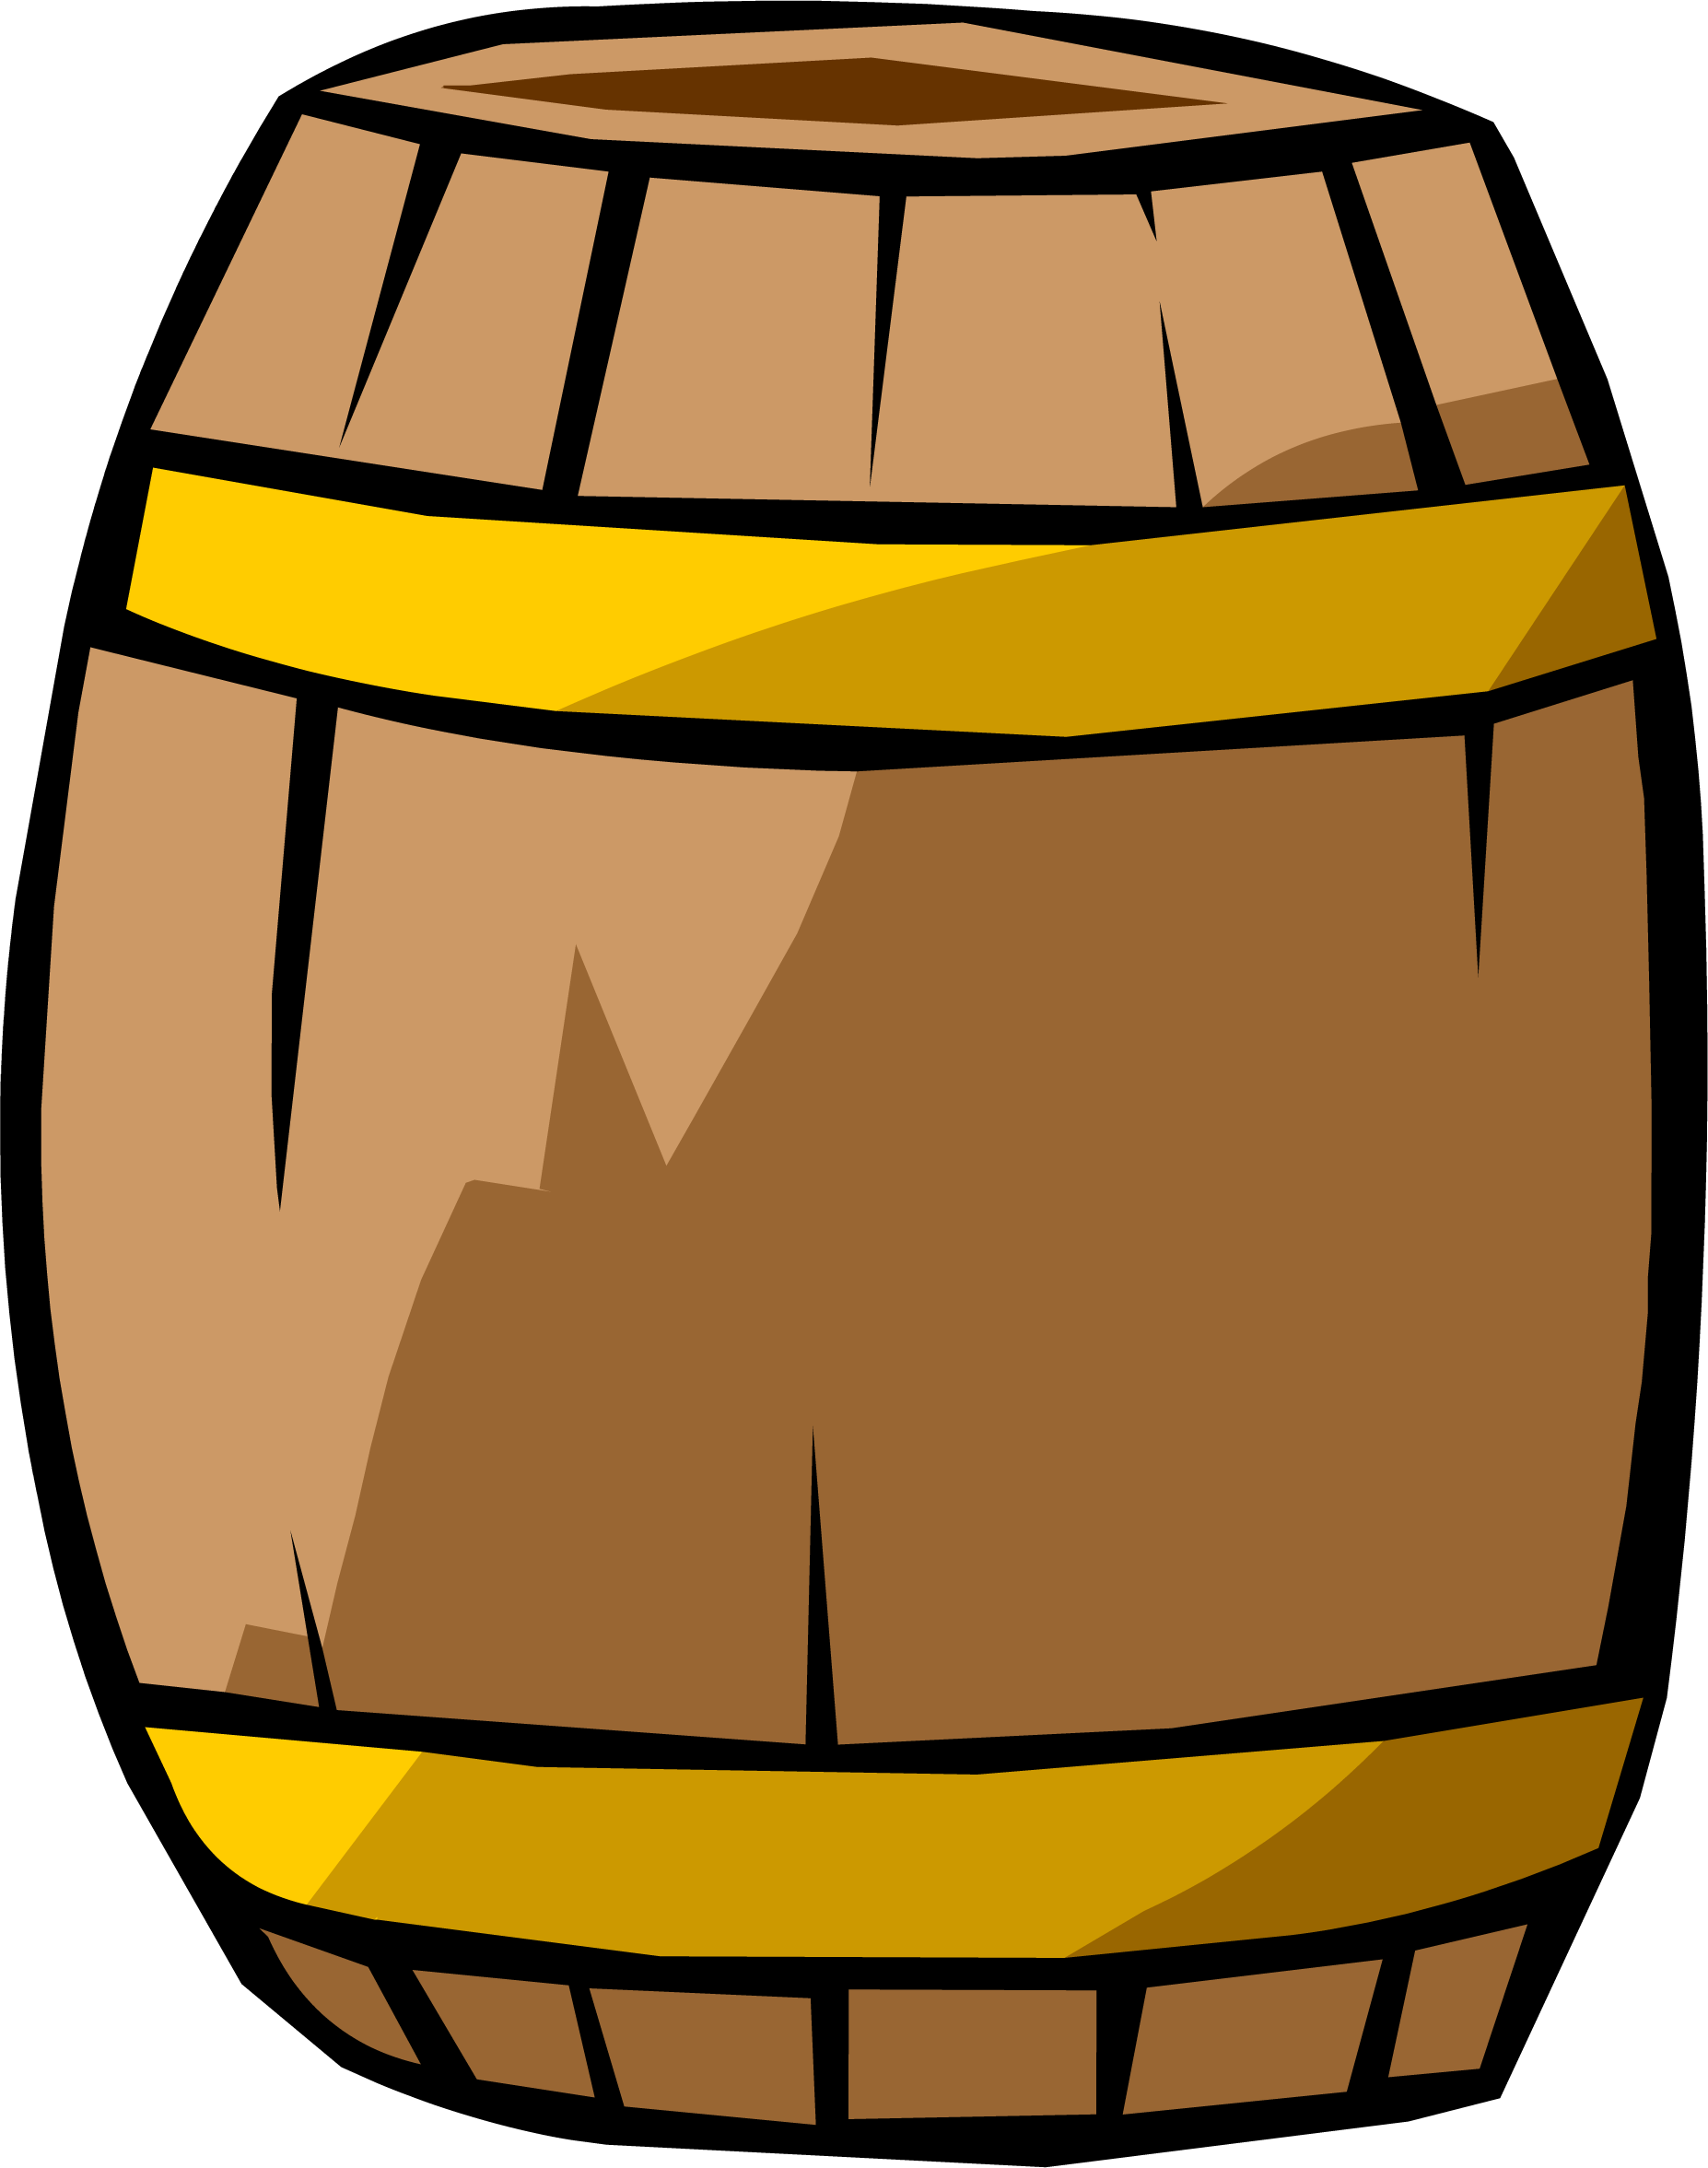 Barrel clipart. Transparent png stickpng